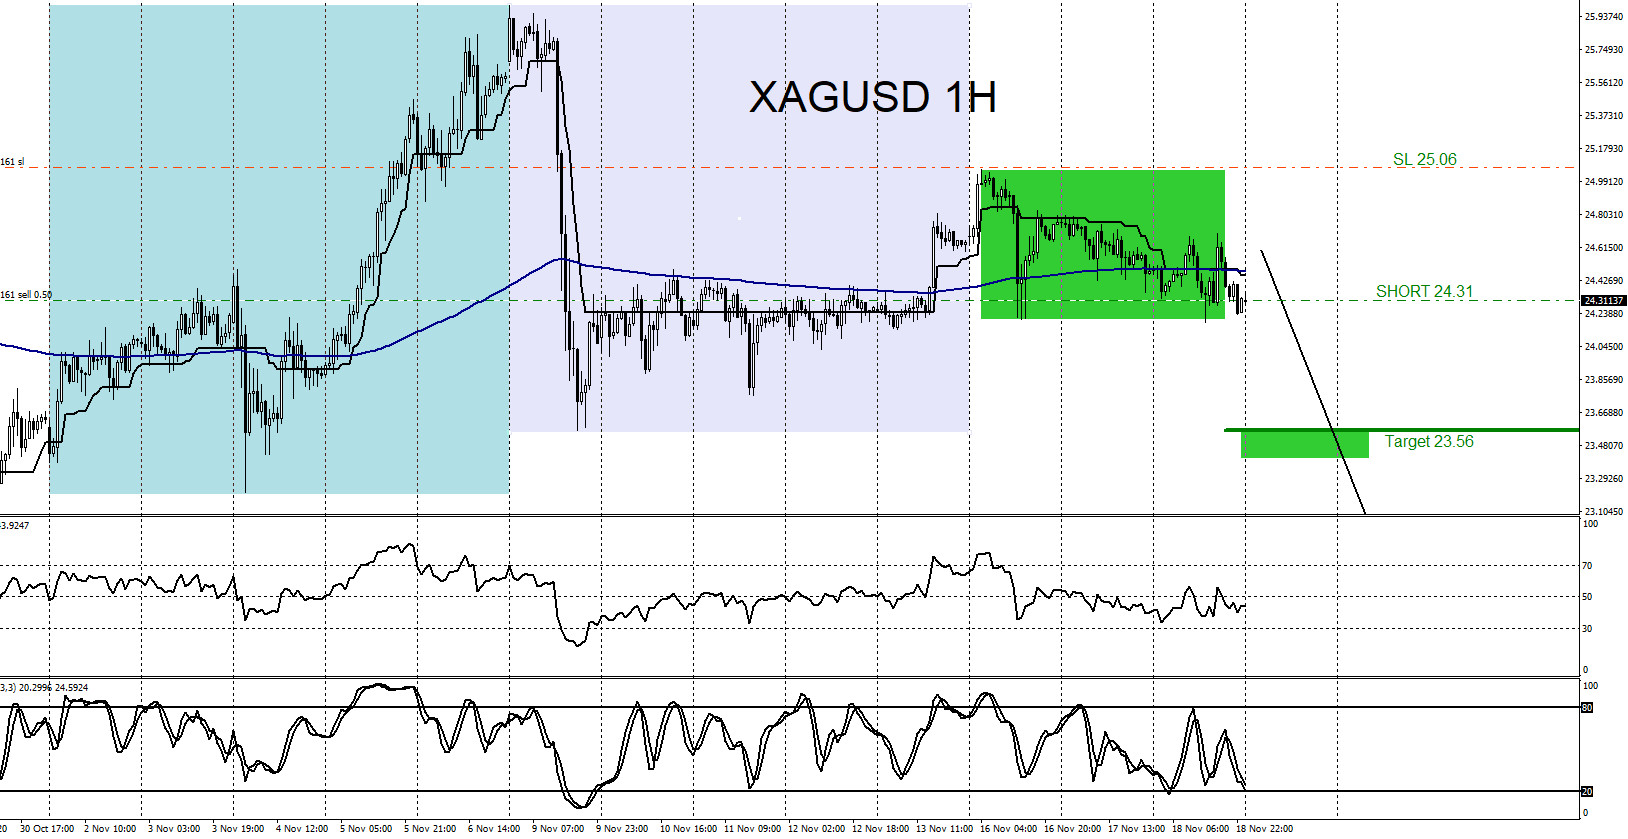 XAGUSD : Calling the Move Lower